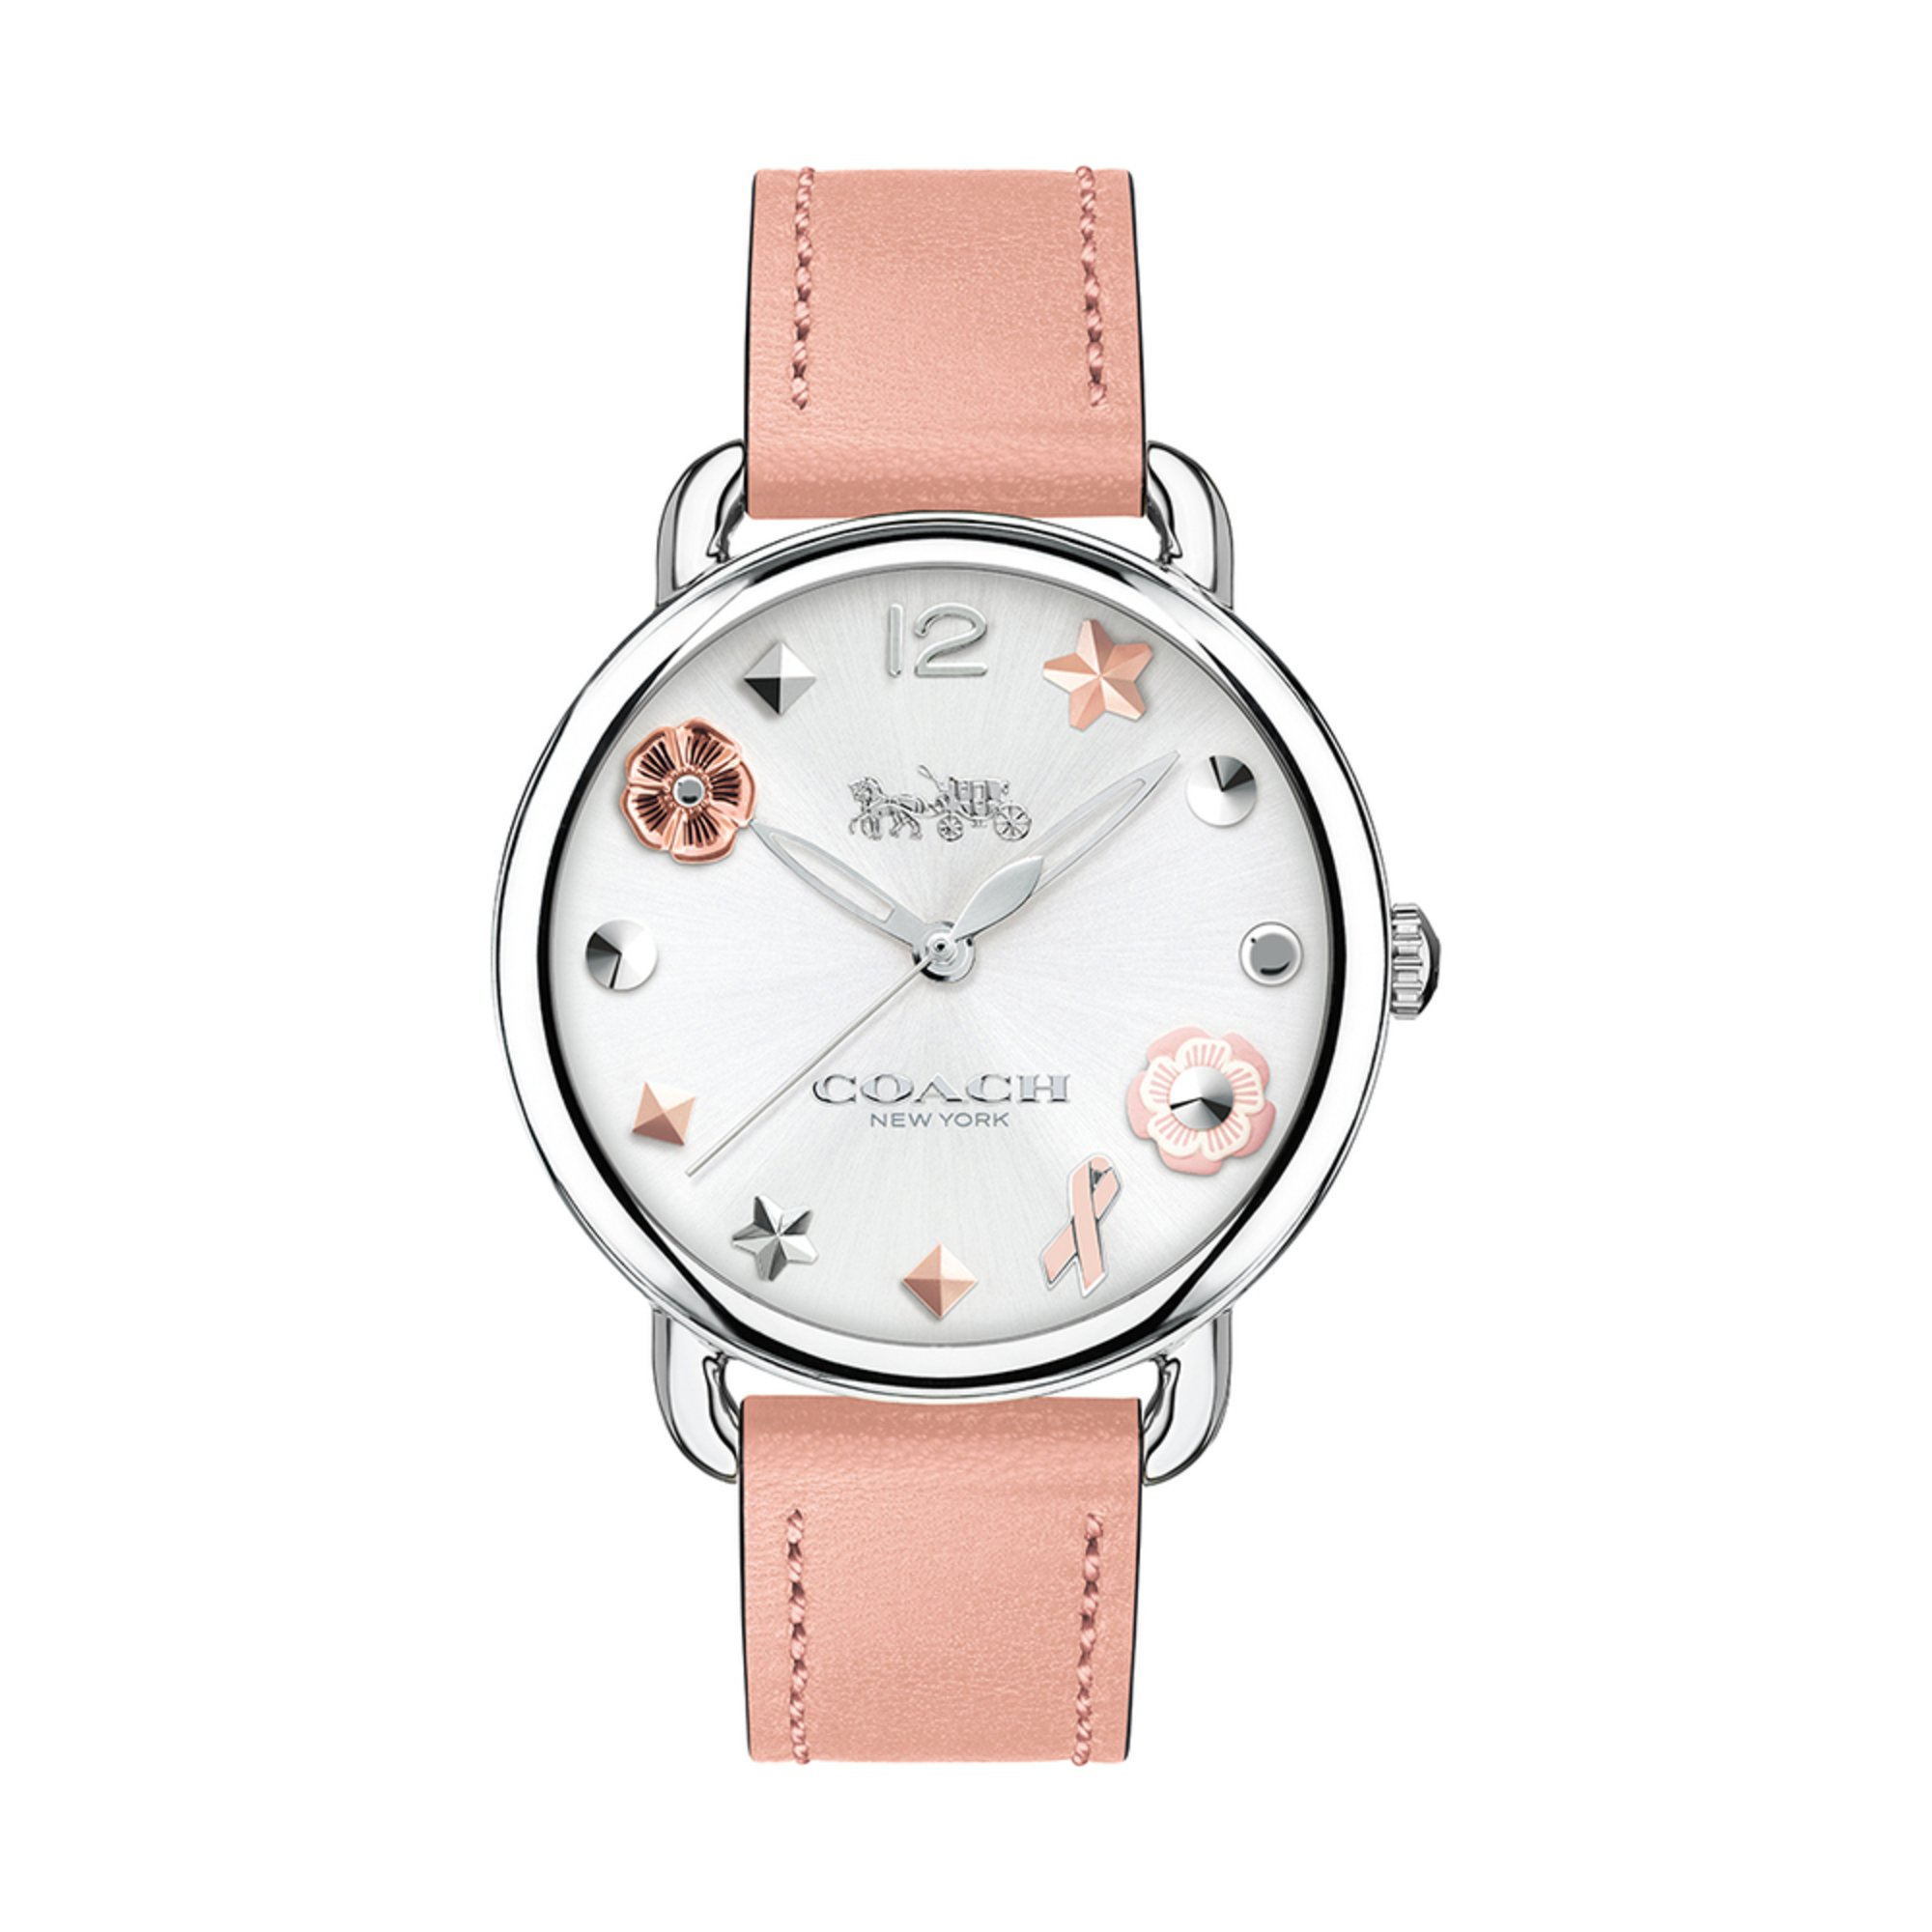 Coach Women S Watch 14502799 Blush Leather Strap 36mm